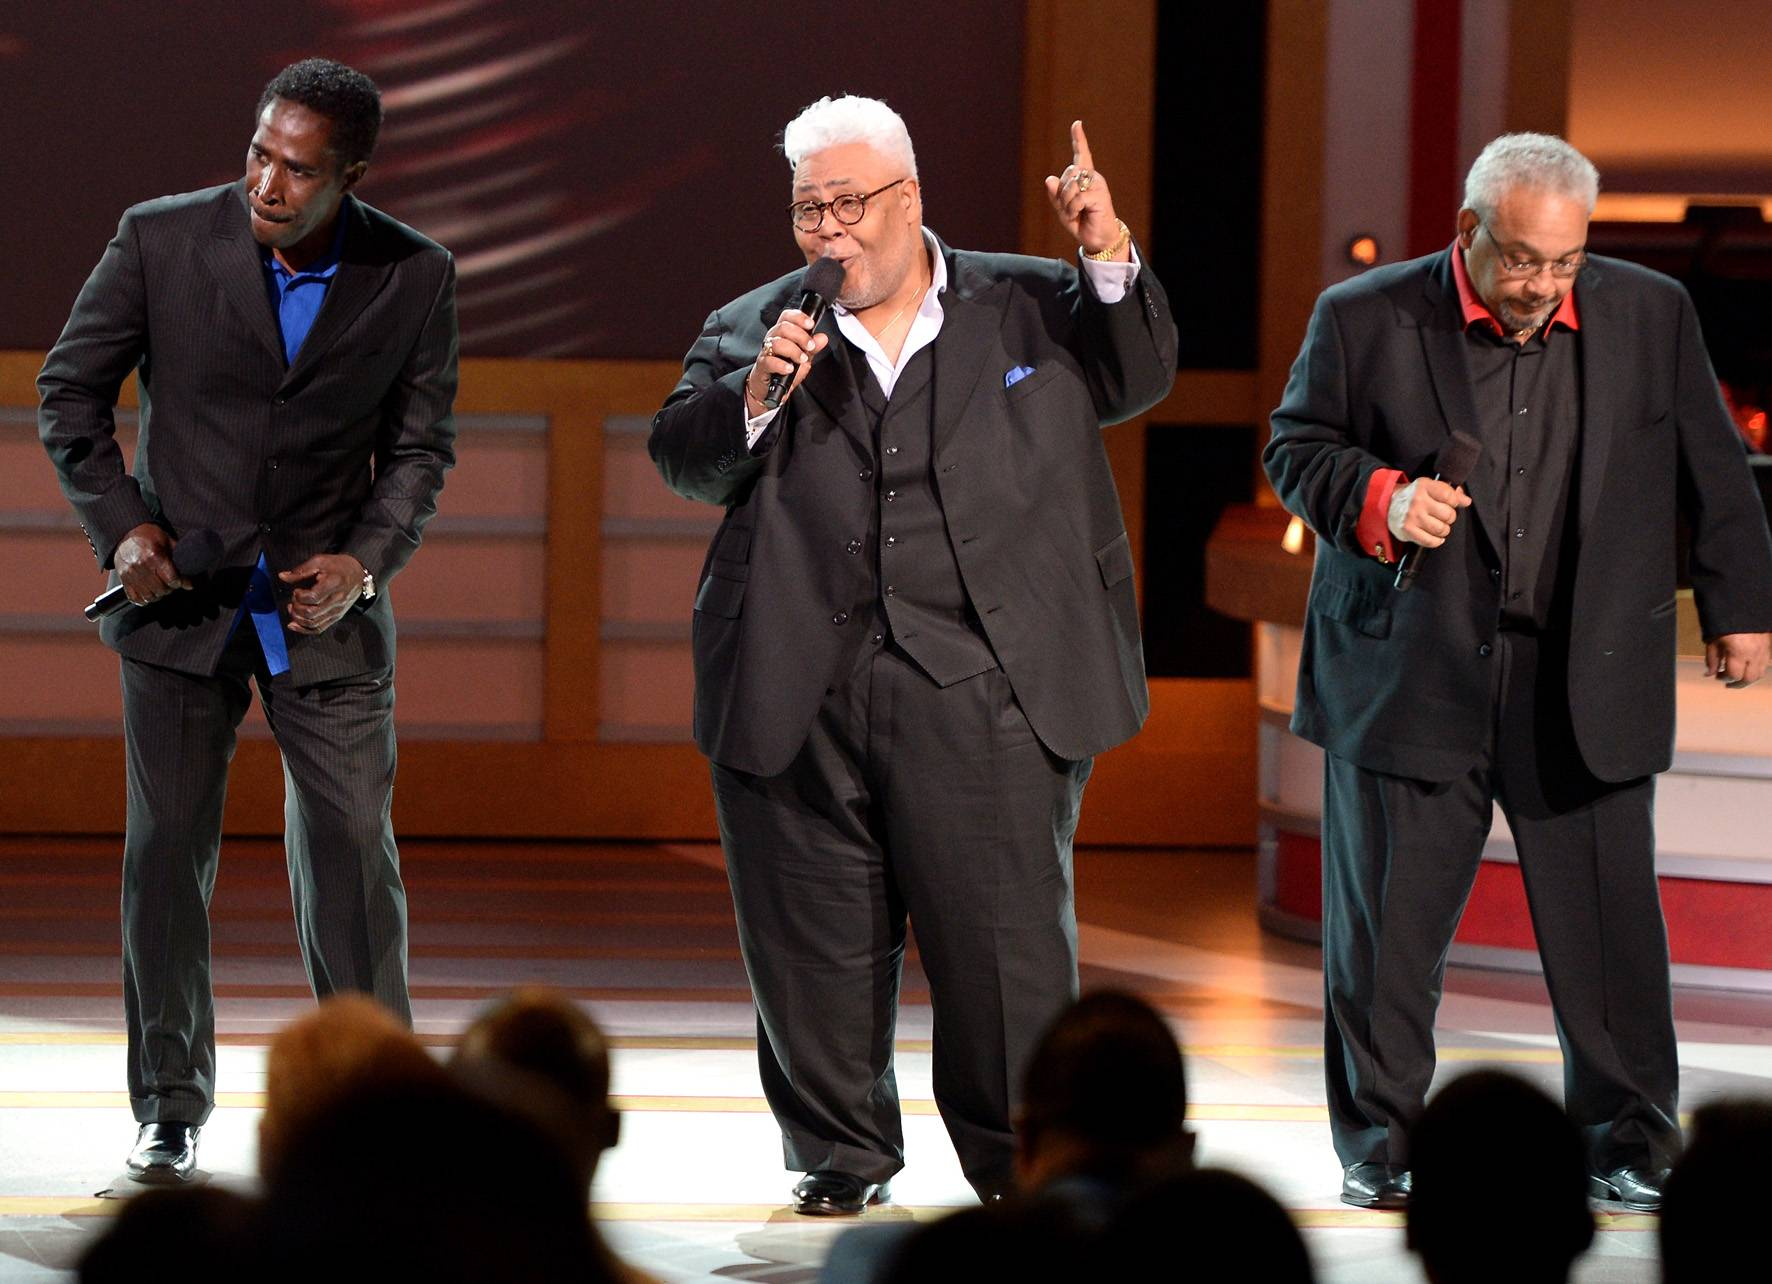 """Aisle Dancin' - The legendary sounds of The Rance Allen Group would propel the shiest saint from his seat to the aisle. While performing """"At Your Feet"""" and """"Got Me Dancin,"""" The Rance Allen Group had the audience doing exactly that!(Photo: Jason Kempin/Getty Images for BET)"""